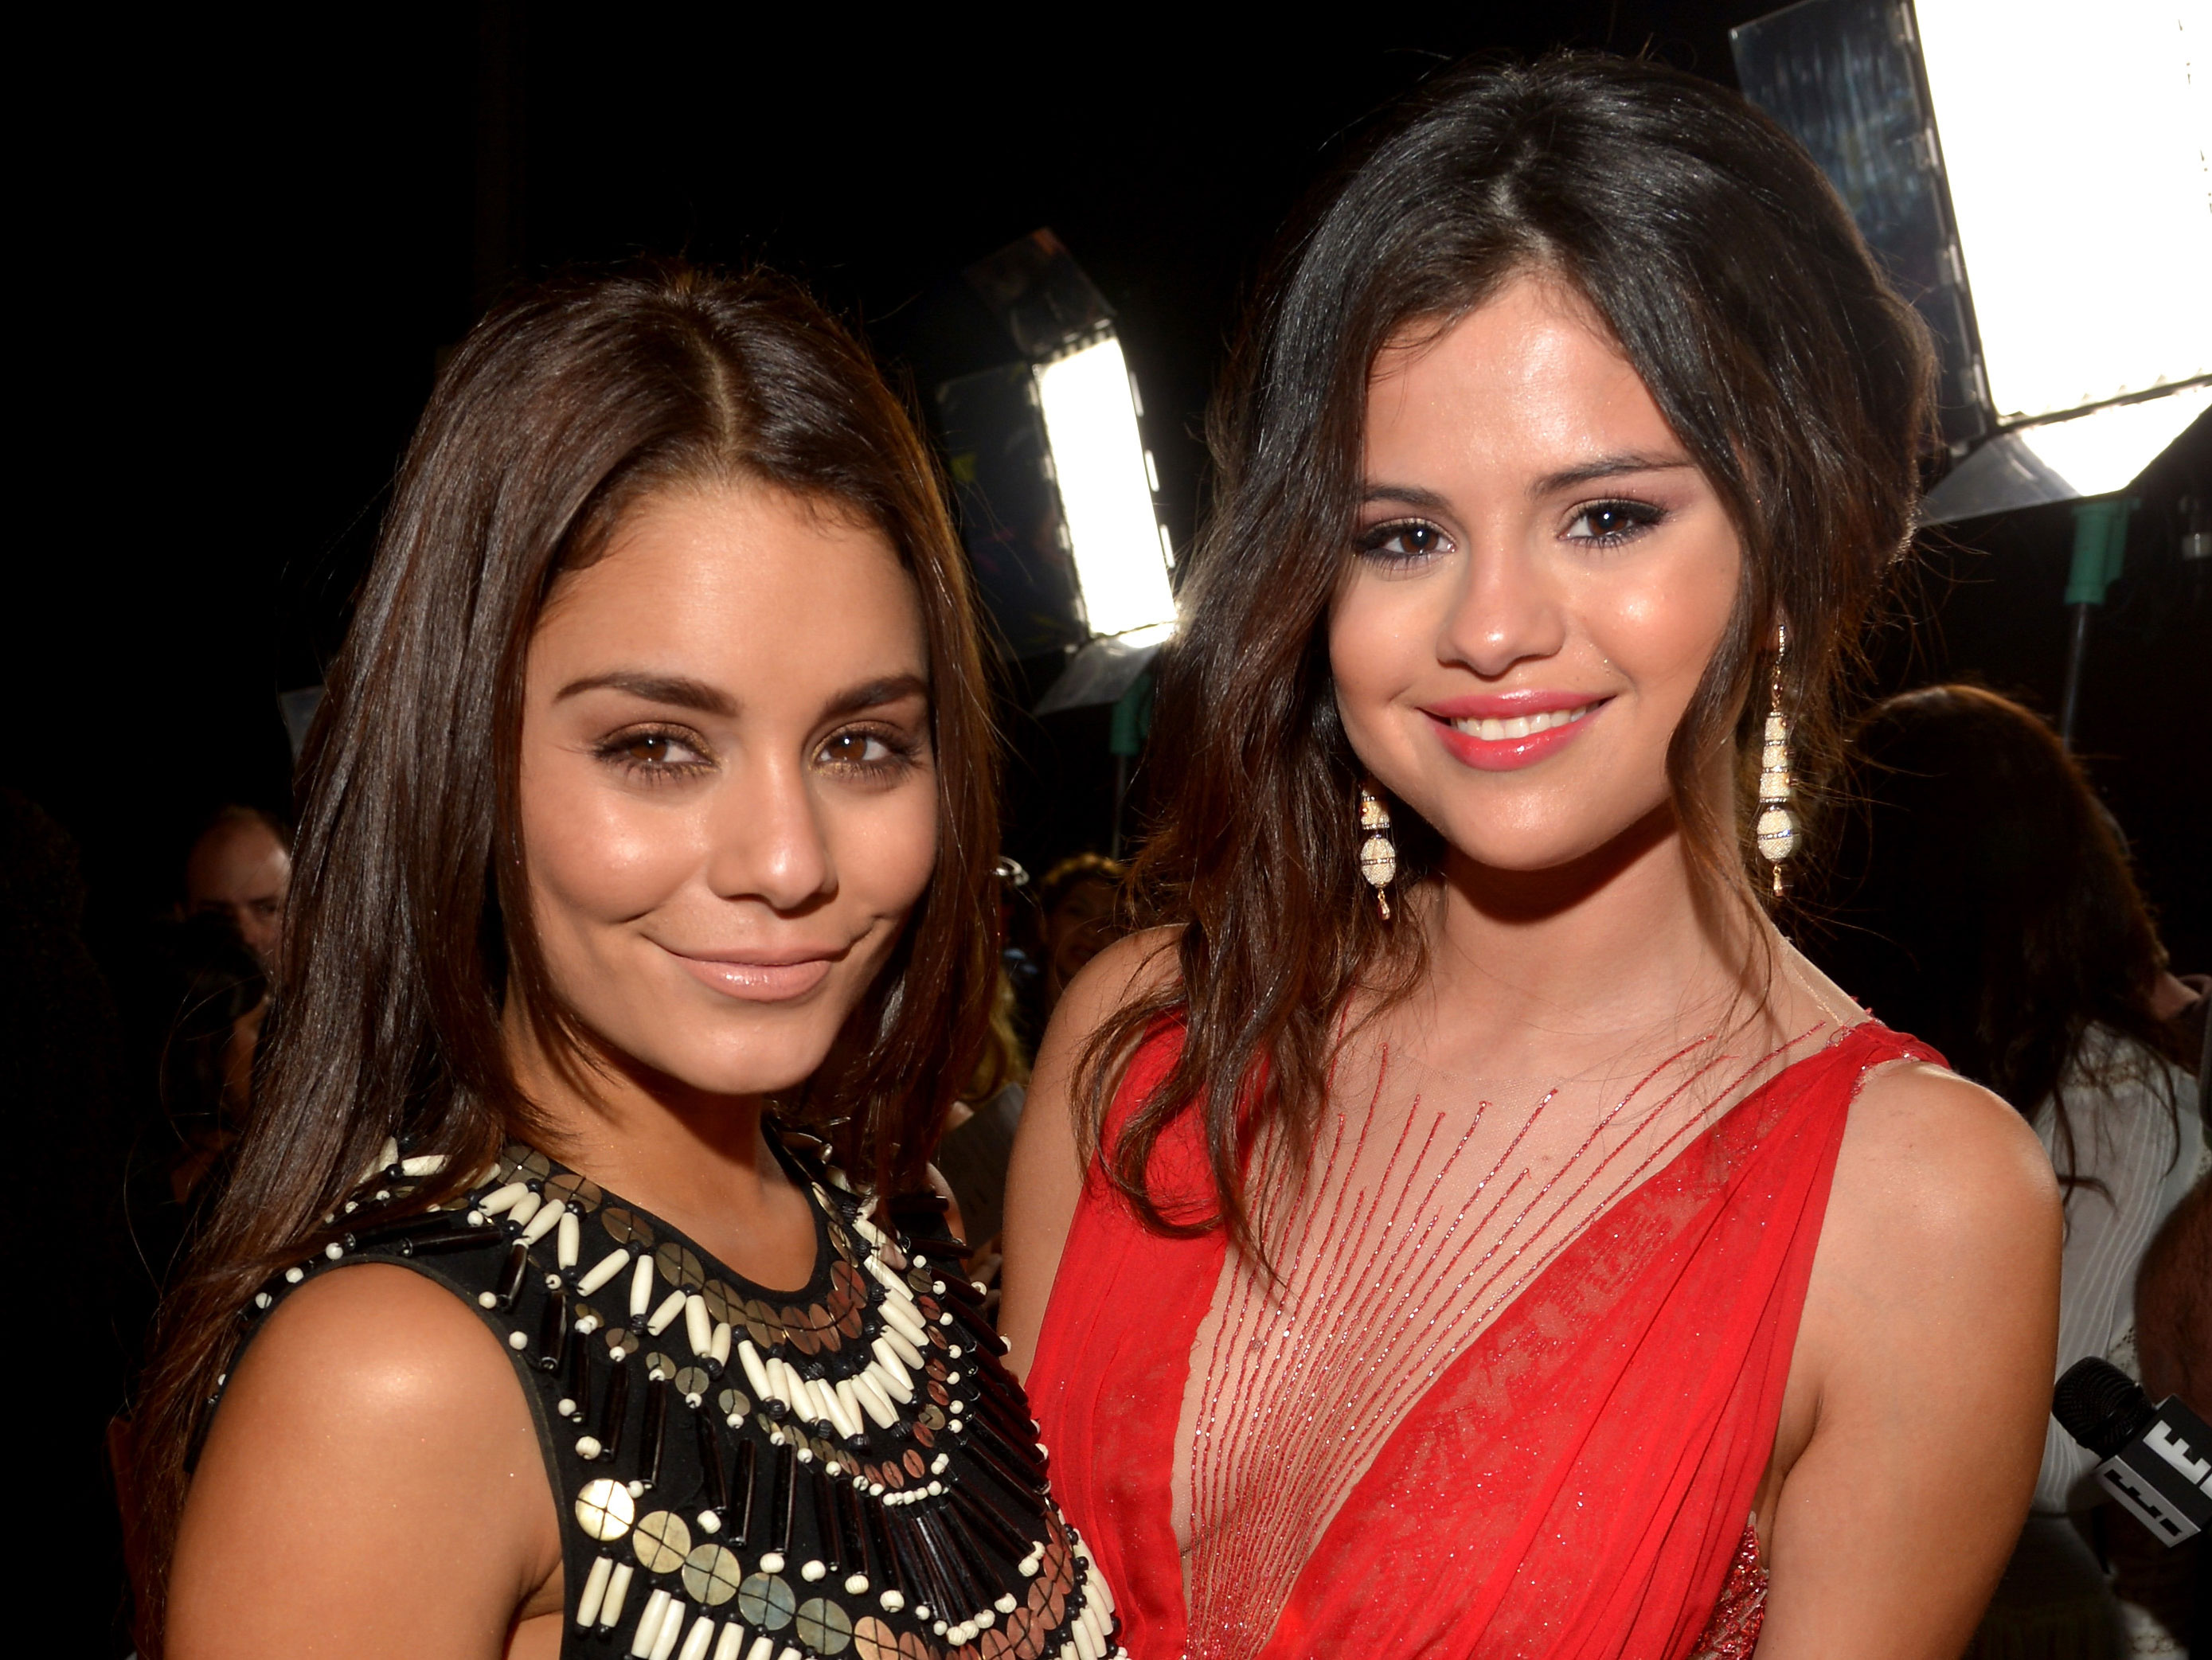 Vanessa Hudgens Calls Selena Gomez A 'Beautiful, Talented Gypsy'